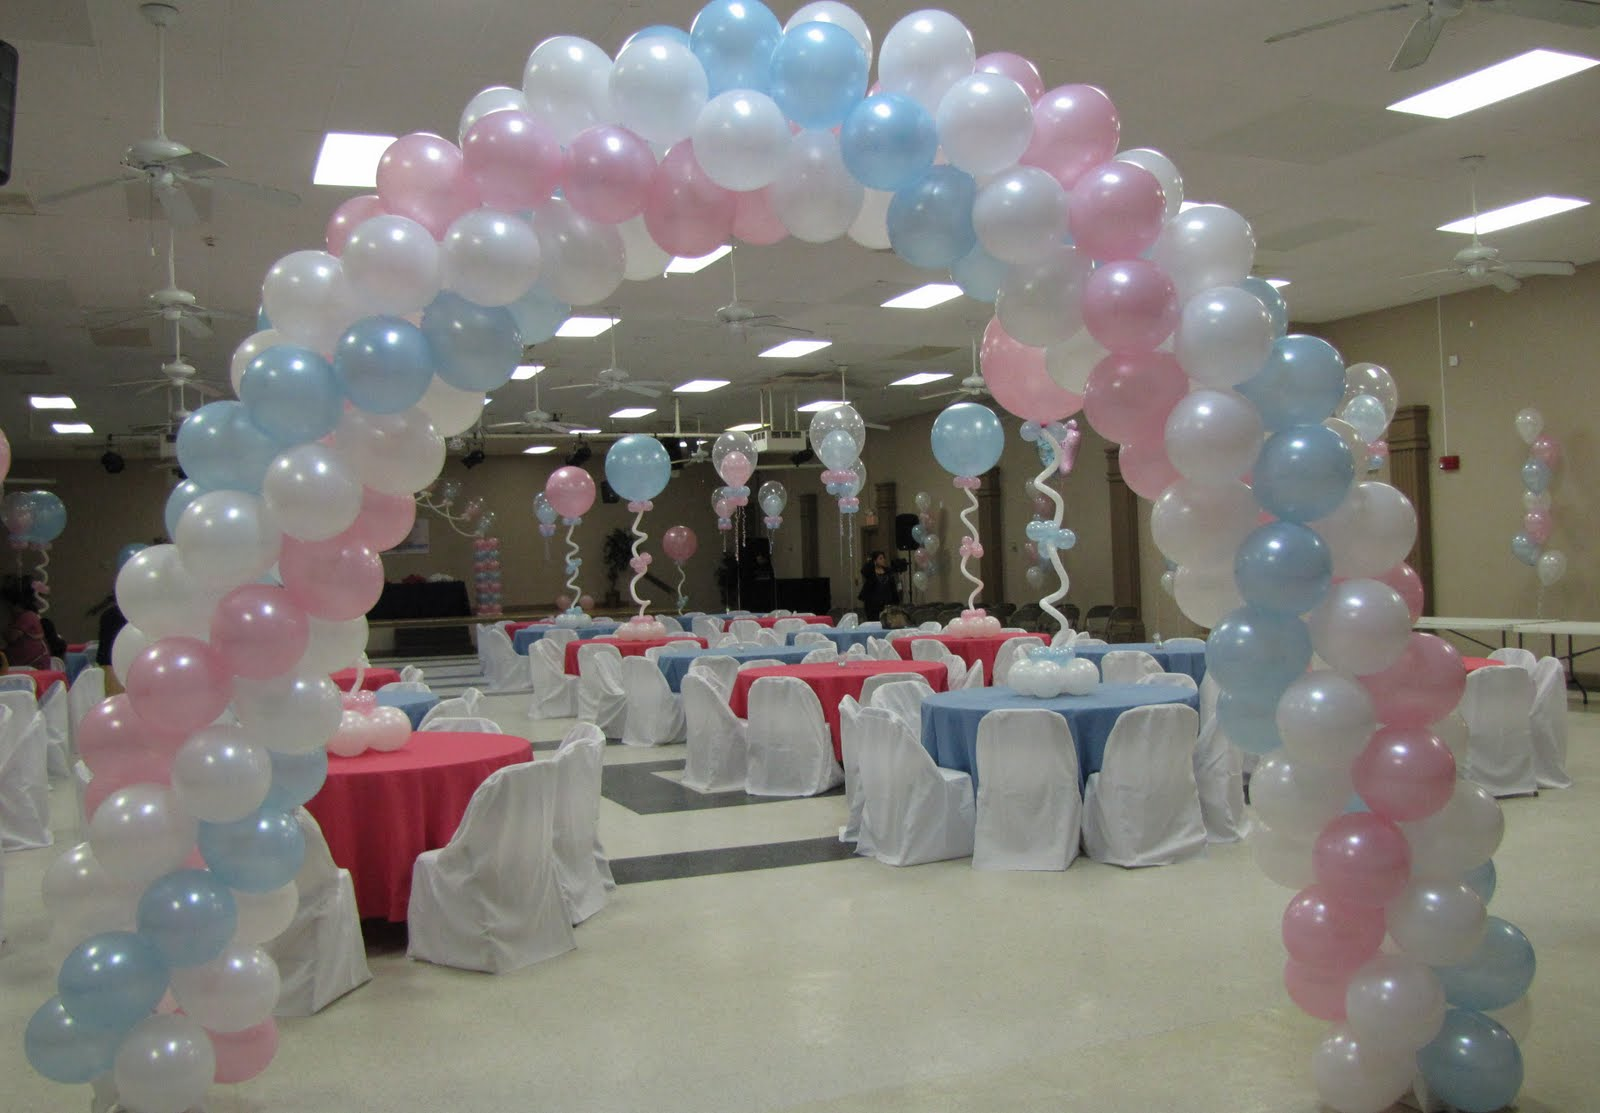 balloons decorations for baby shower party favors ideas